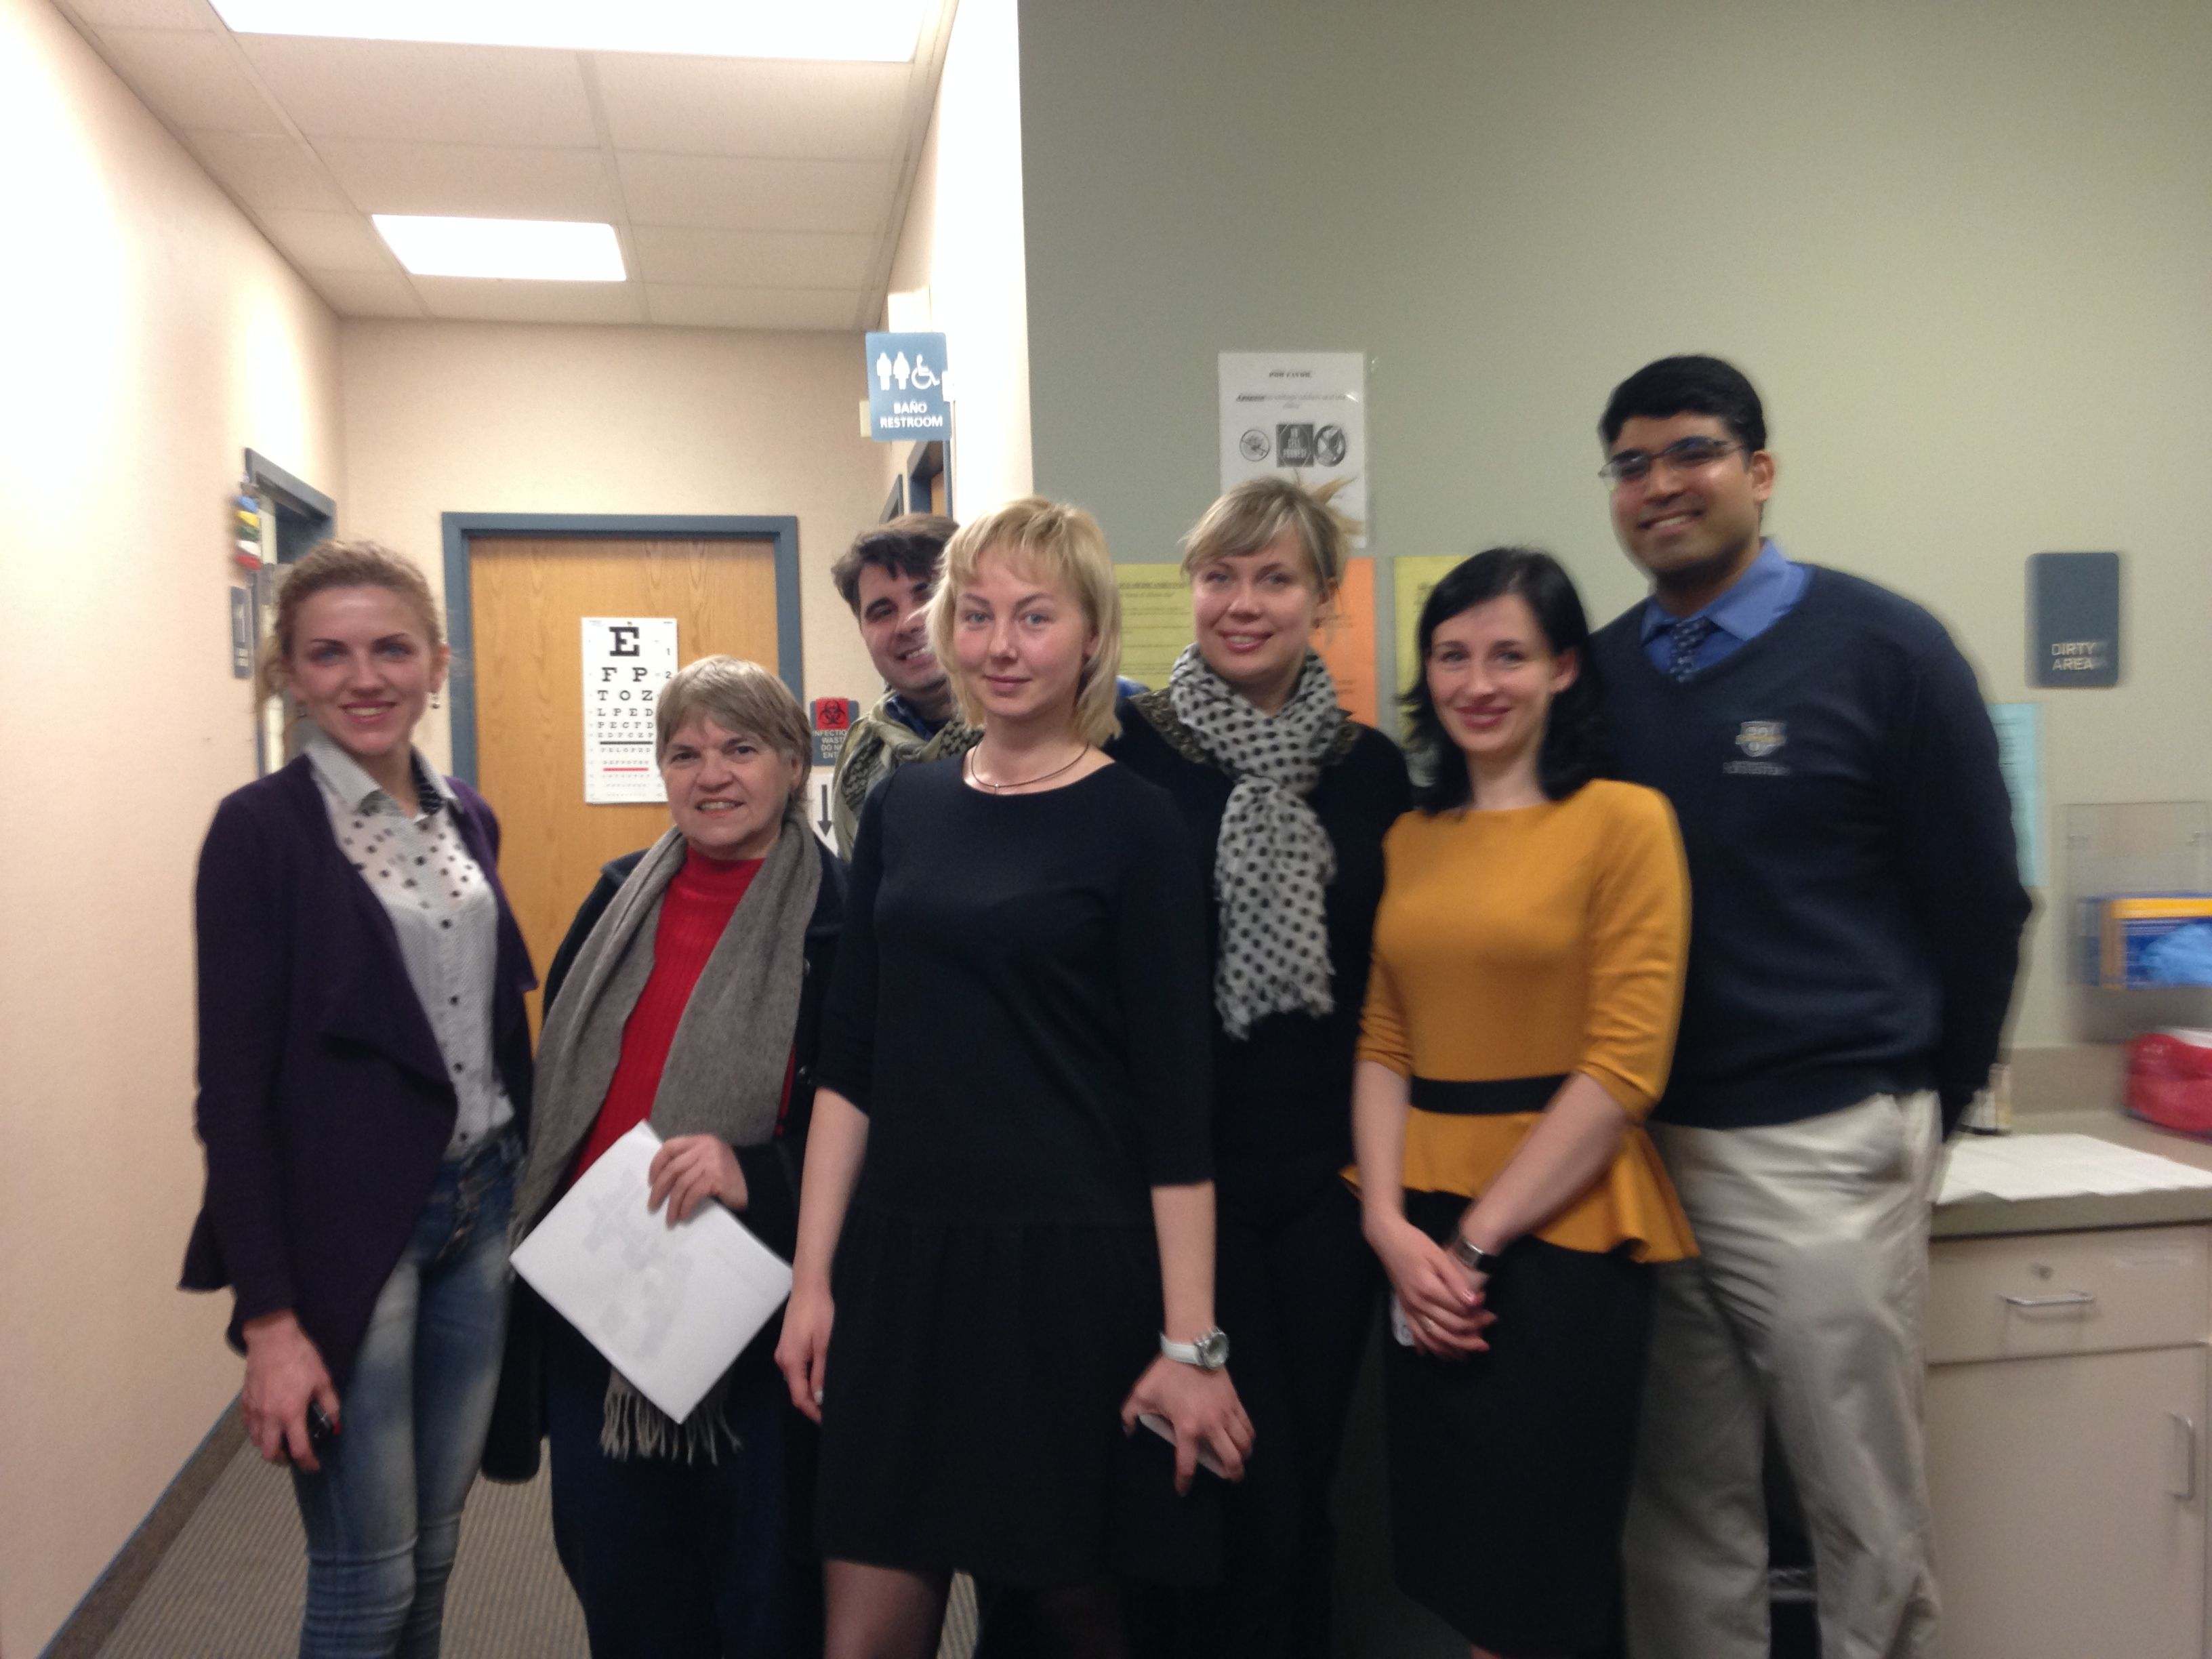 Ukrainian Telemedicine Delegation in Rochester, New York visiting a Primary Care Clinic for Diabetes